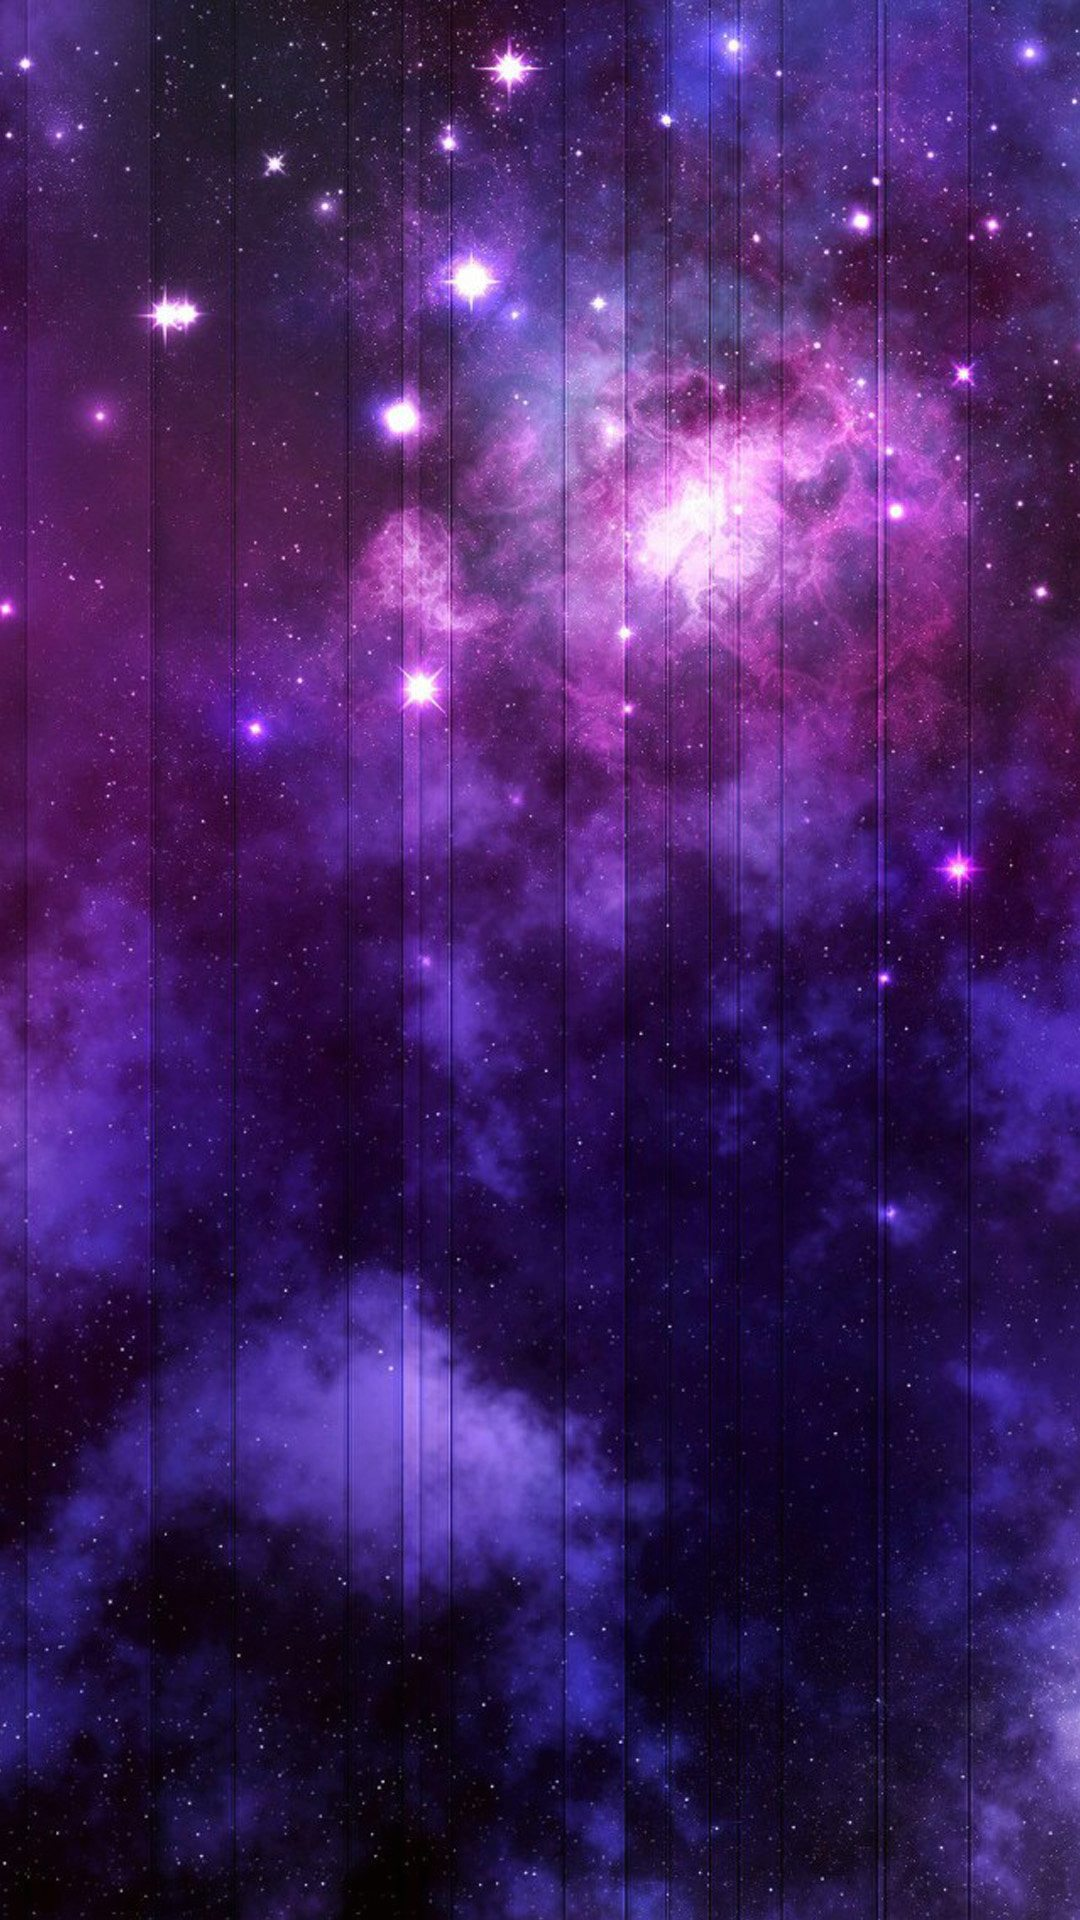 Wallpaper Full Hd 1080 X 1920 Smartphone Vertical Stiped Nebula